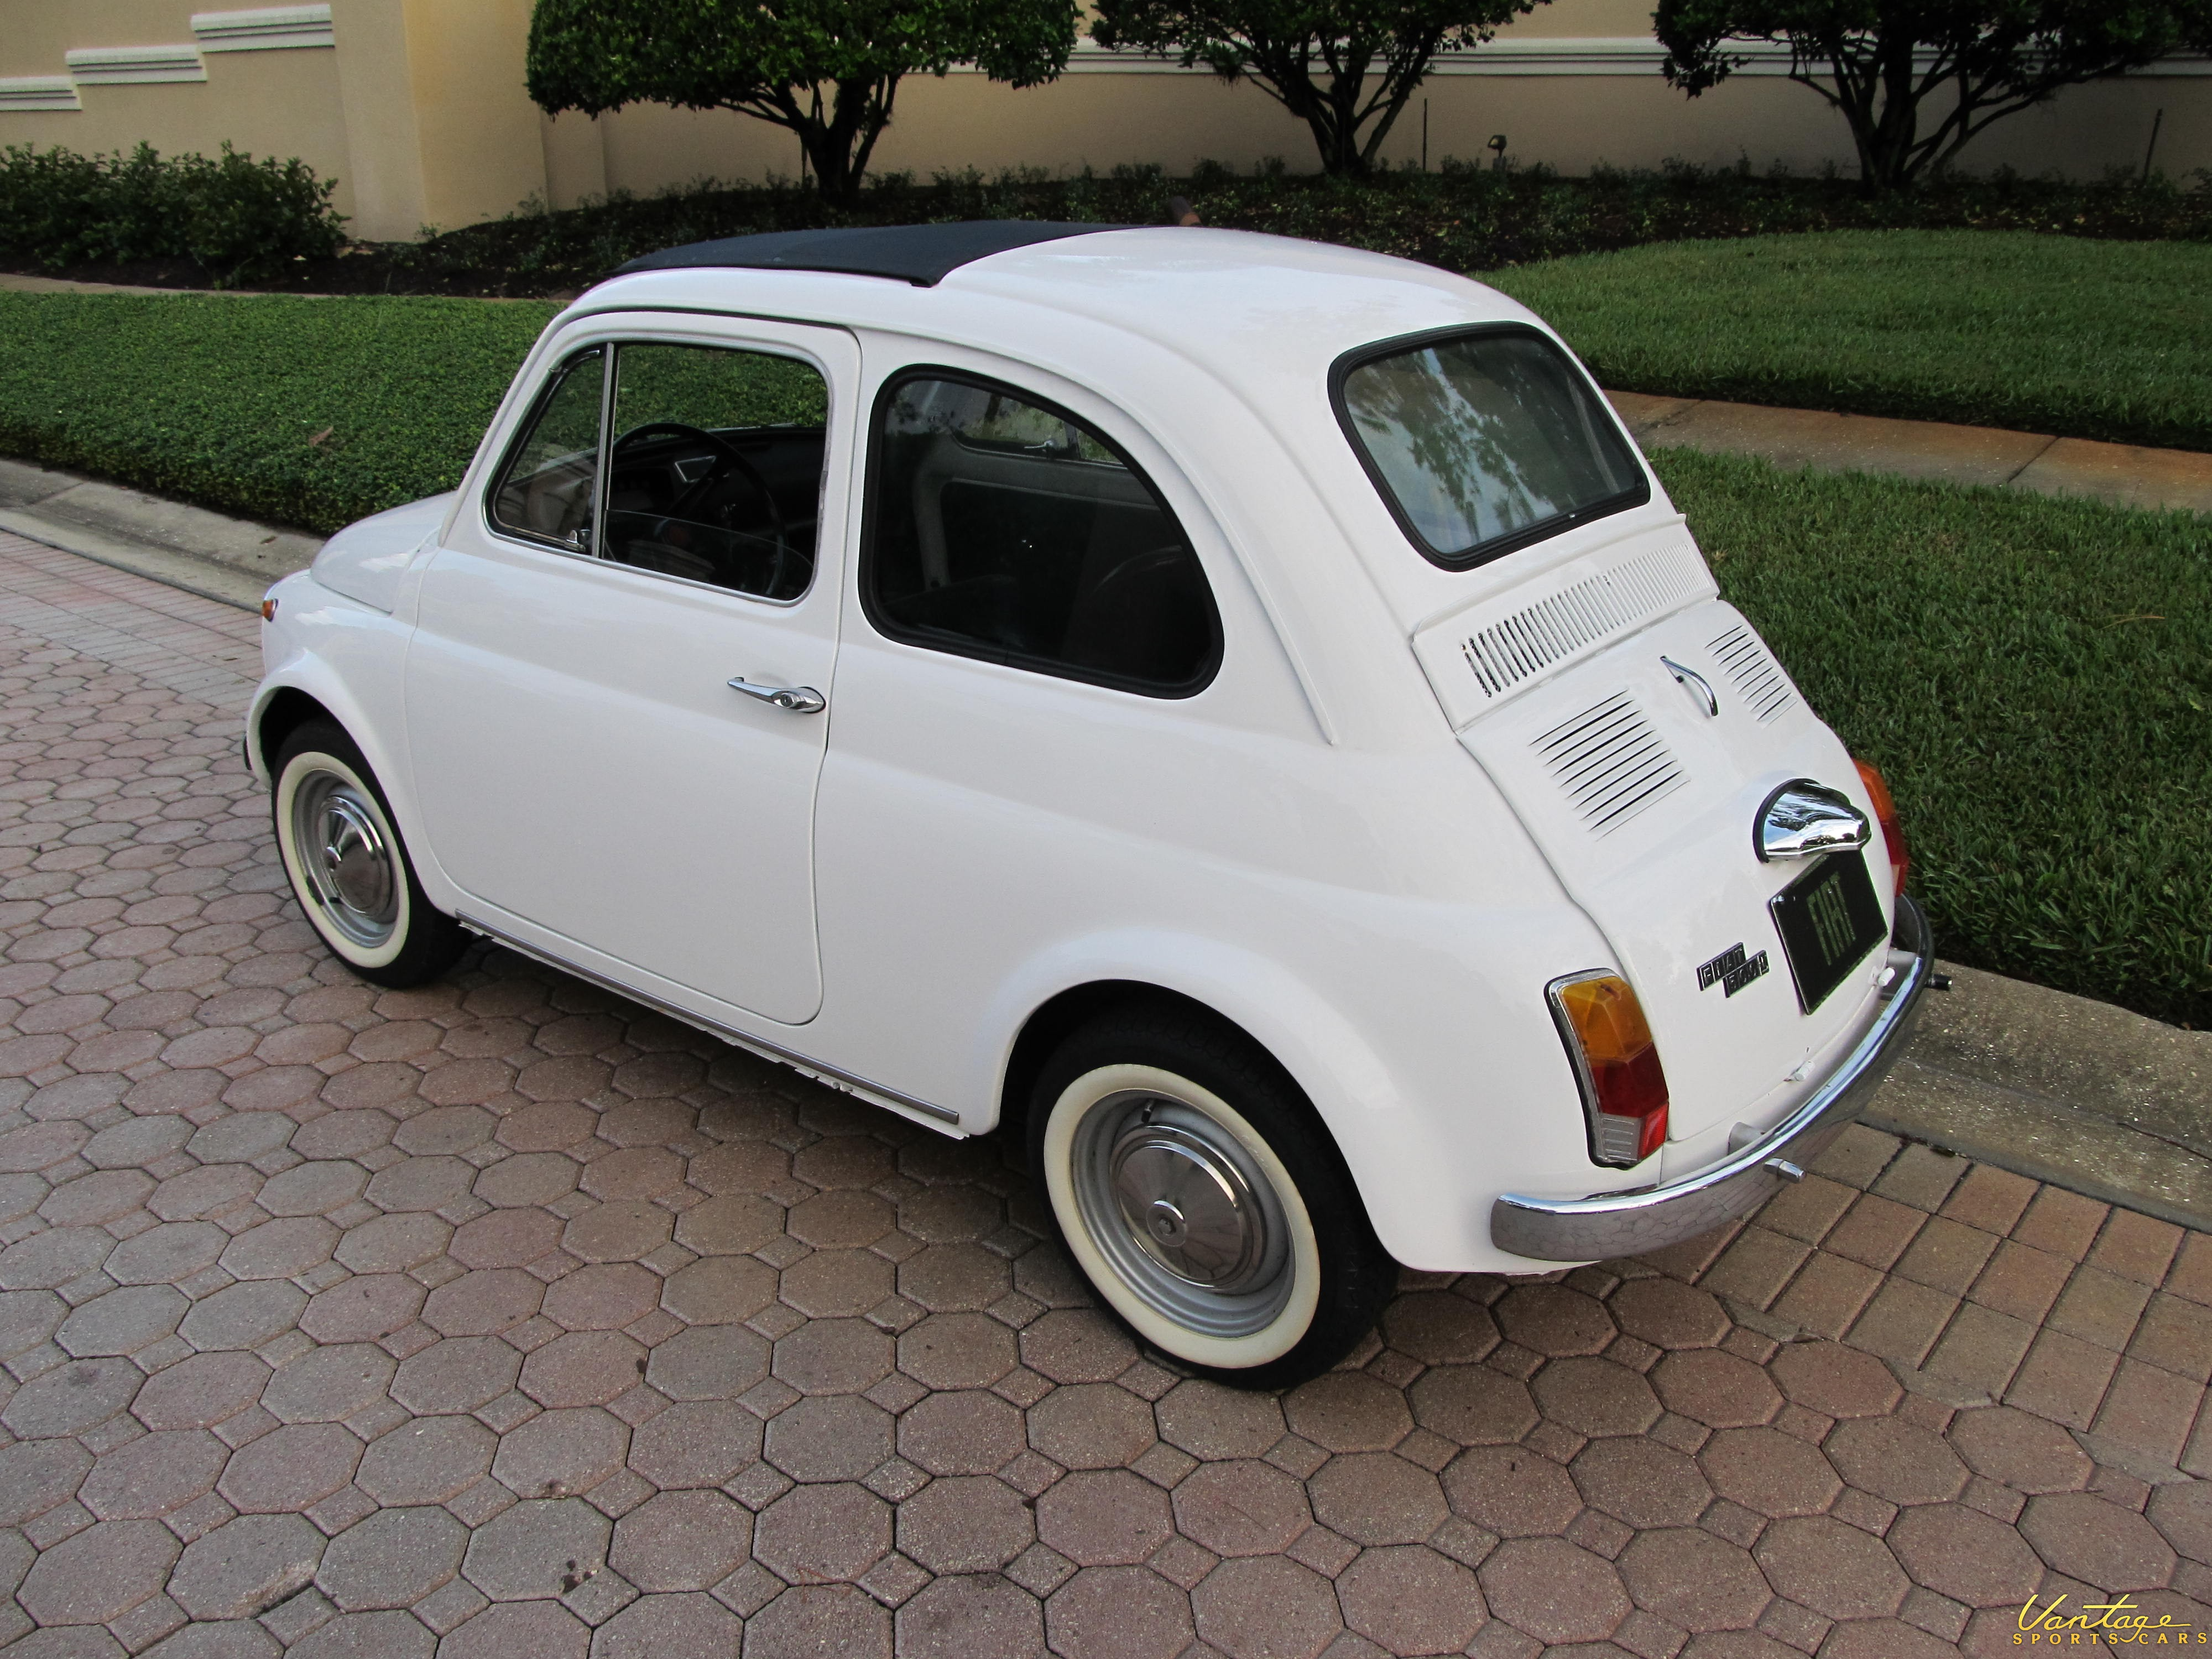 1970 Fiat 500 L Sold Vantage Sports Cars For Sale Lrestored Italian Classic With Only 36000 Kms Finished In Its Original Colors New Black Folding Sunroof